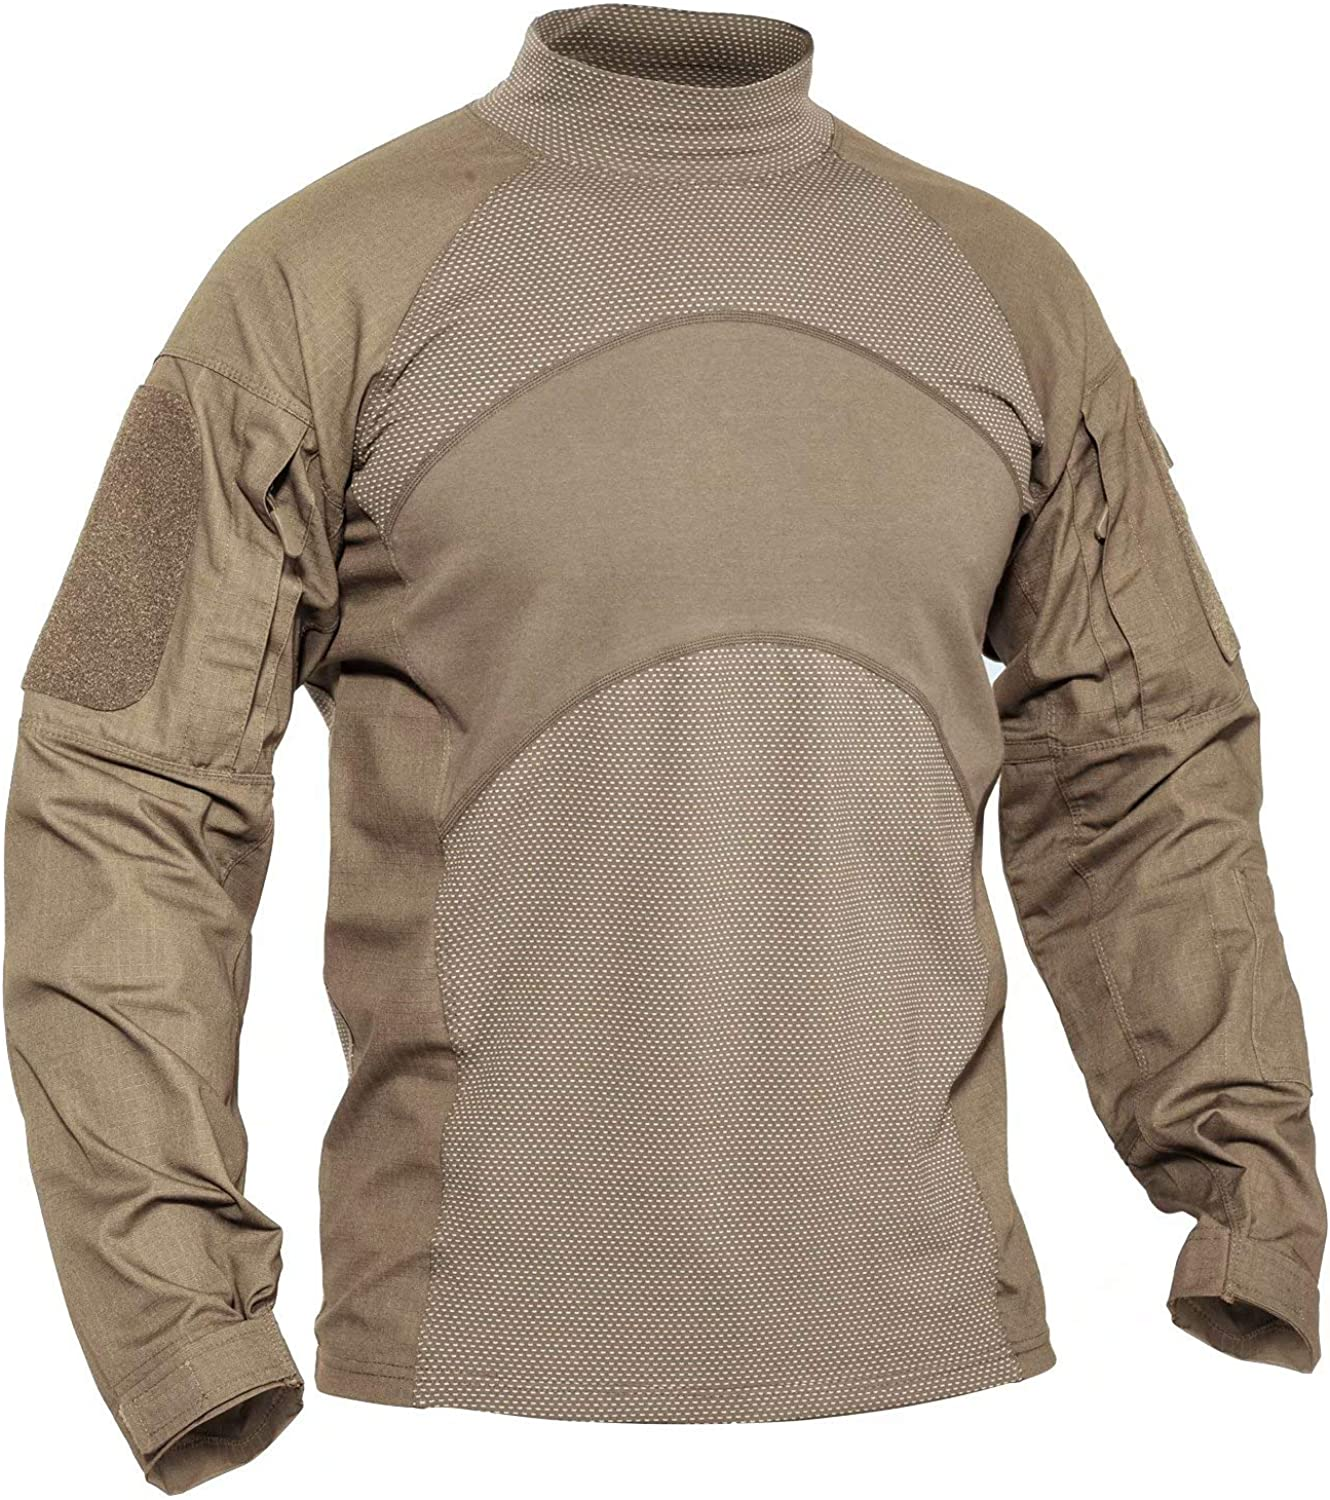 MAGCOMSEN Men's online shop Long Sleeve Tactical Shirts specialty shop Combat with Military